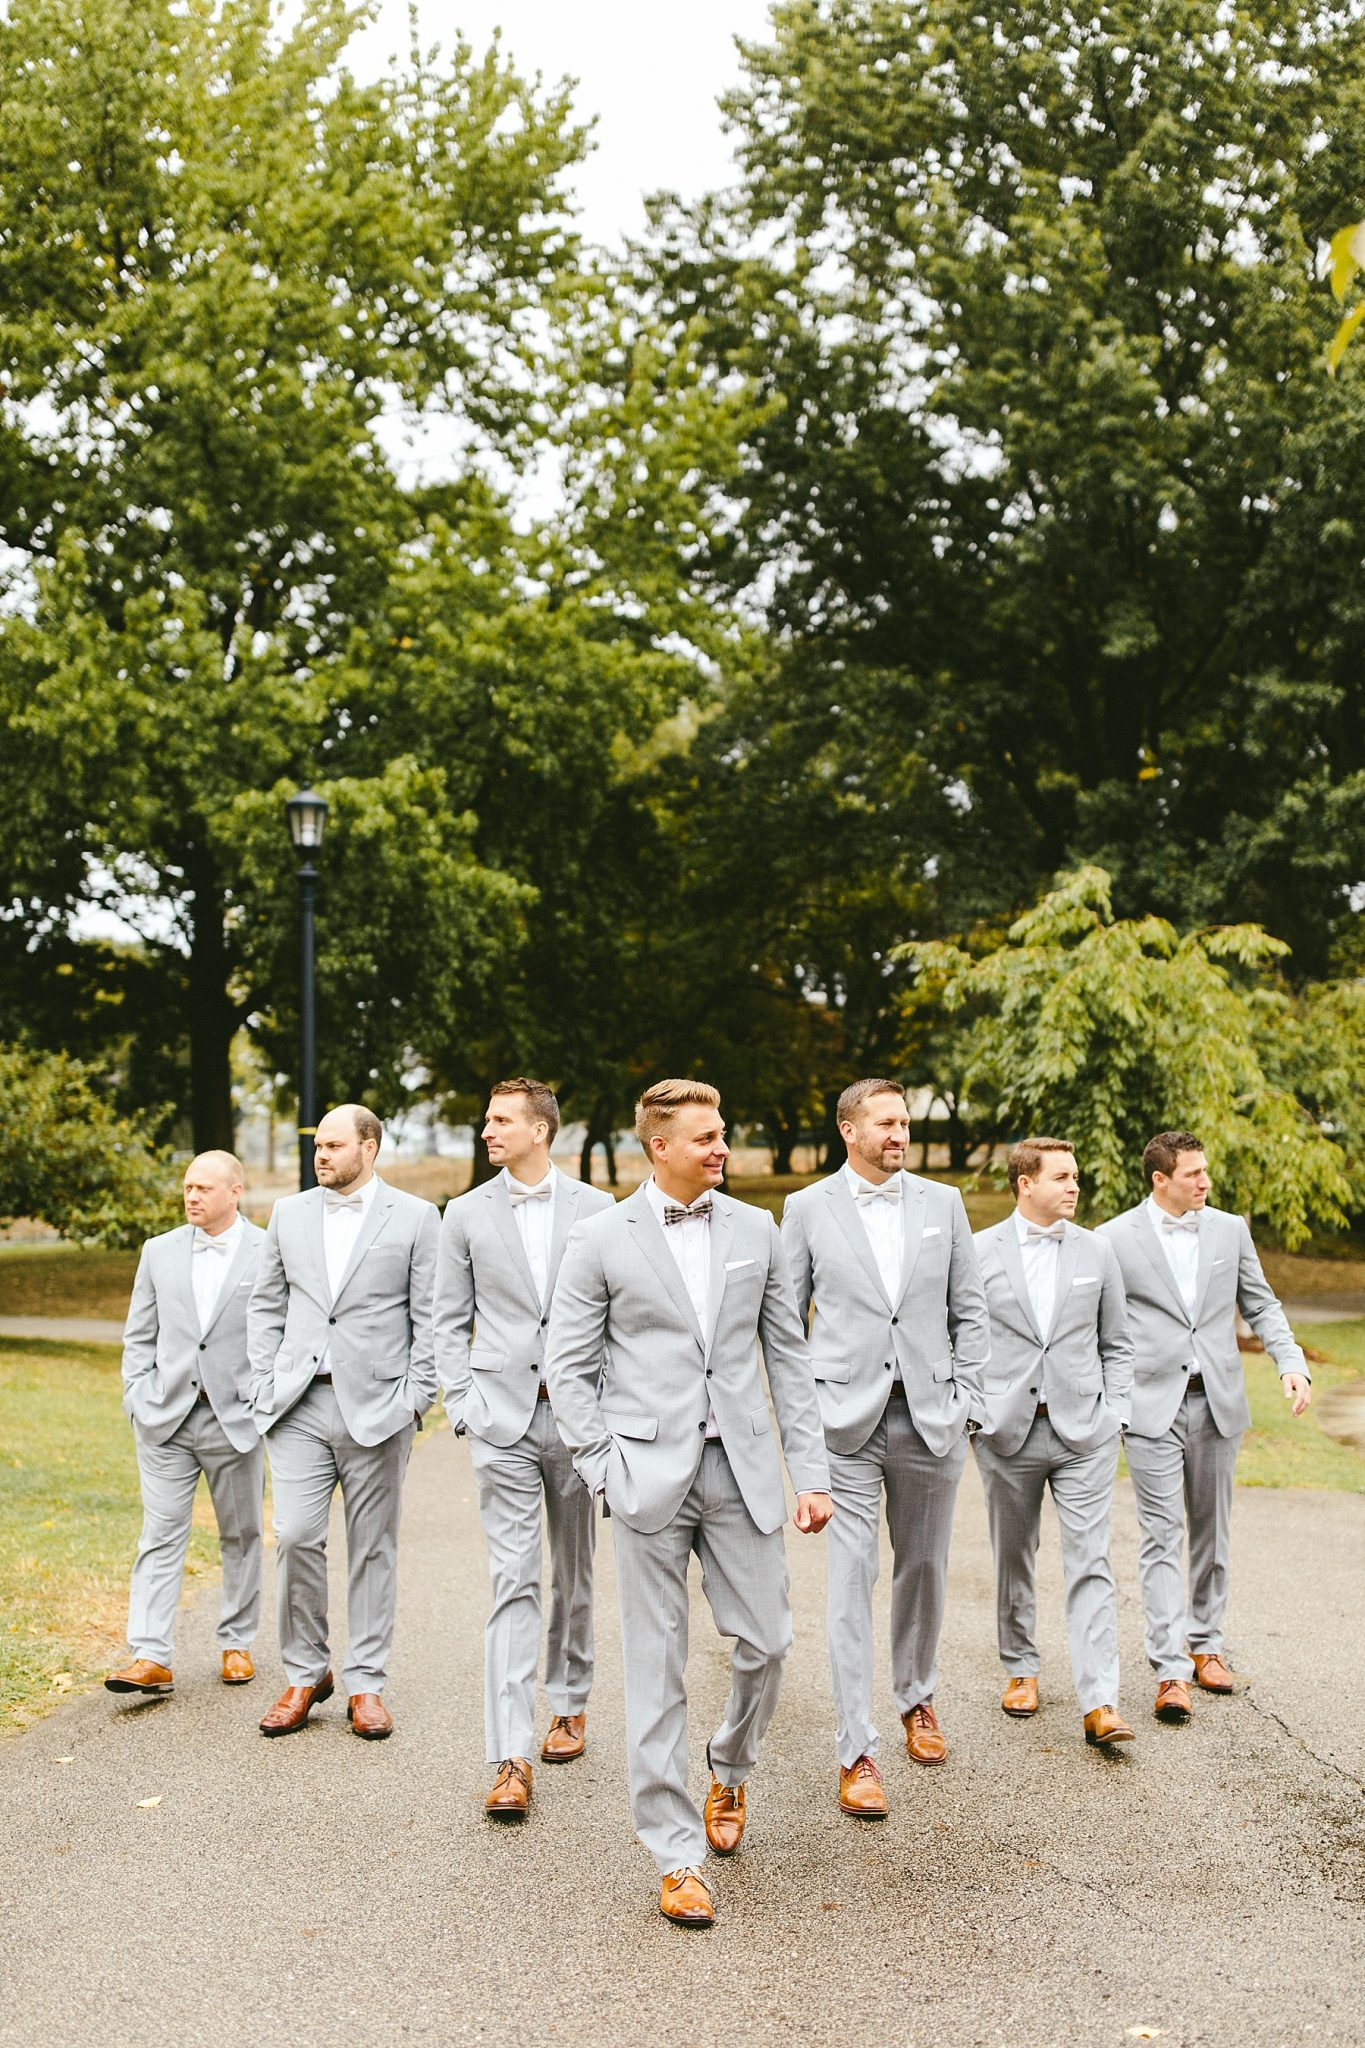 grey groomsmen suits, unique groomsmen photos, grey suits, groomsmen fashion, groomsmen bowties, groom bowties, unique bridal party photos, Brooklyn wedding photography, Brooklyn wedding, Philadelphia wedding photographer, Philadelphia wedding, Brooklyn new york photographer, unique wedding inspiration, fun wedding photos, romantic wedding, destination wedding photographer